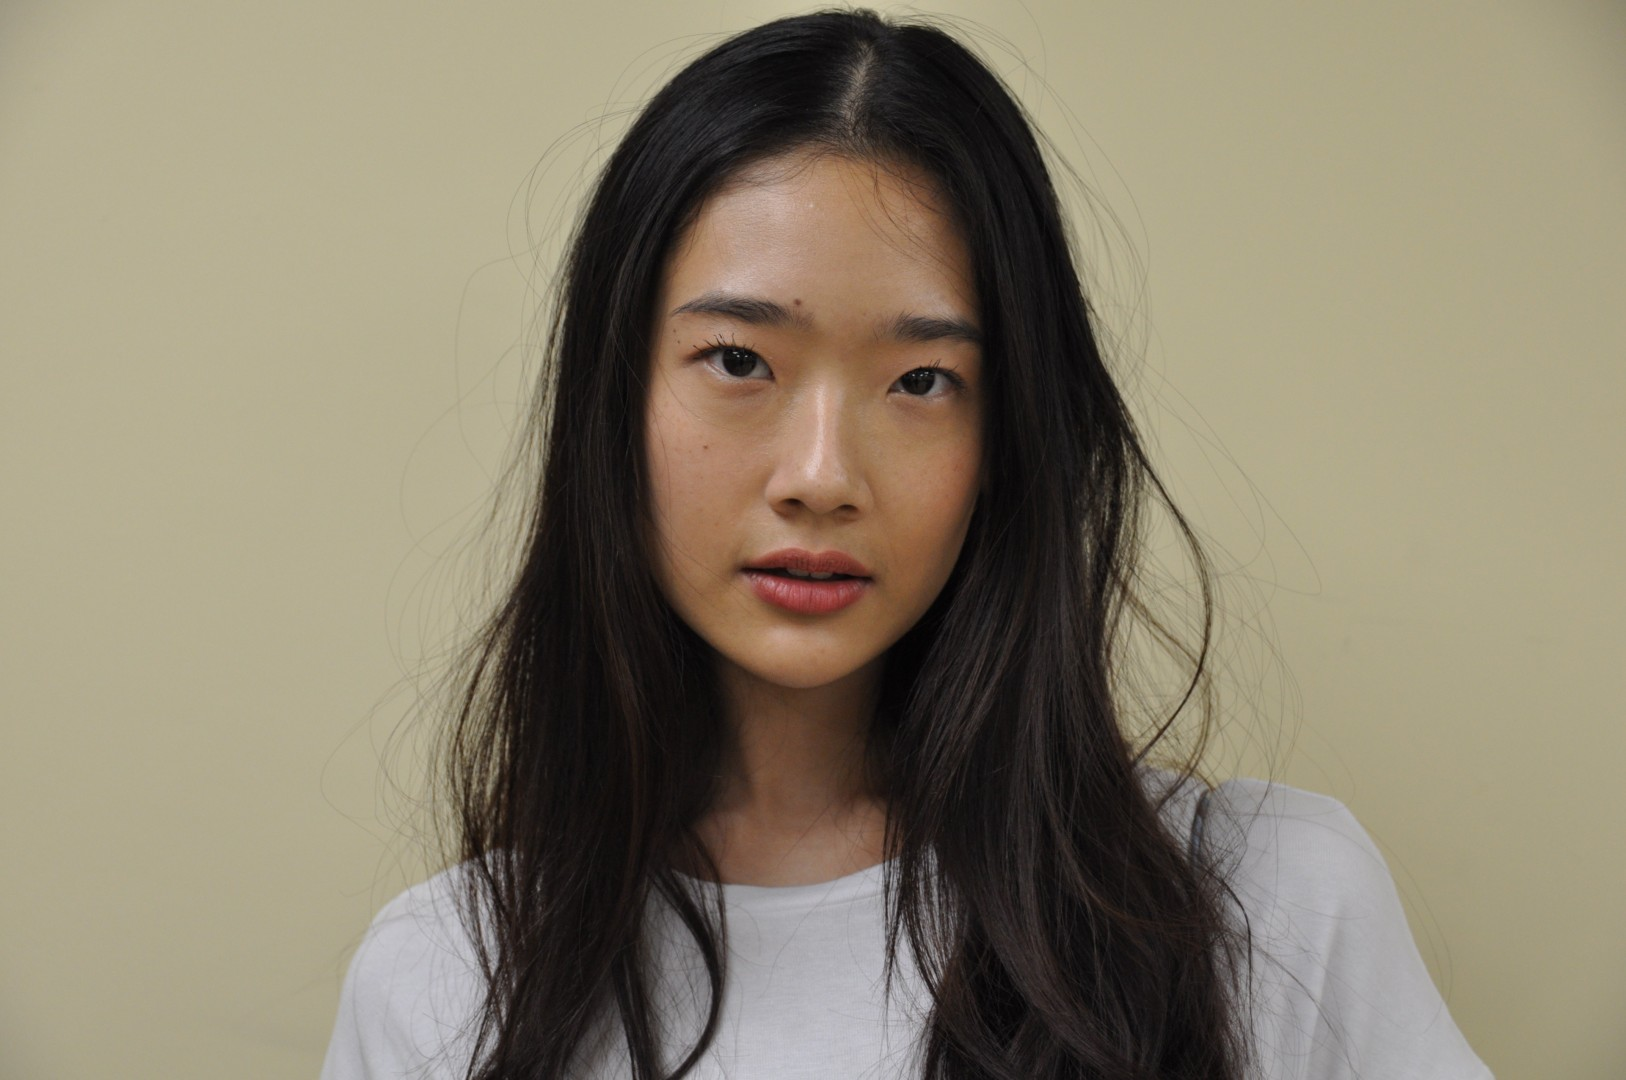 Bad Genius star shocked at sudden rise to fame – but she is